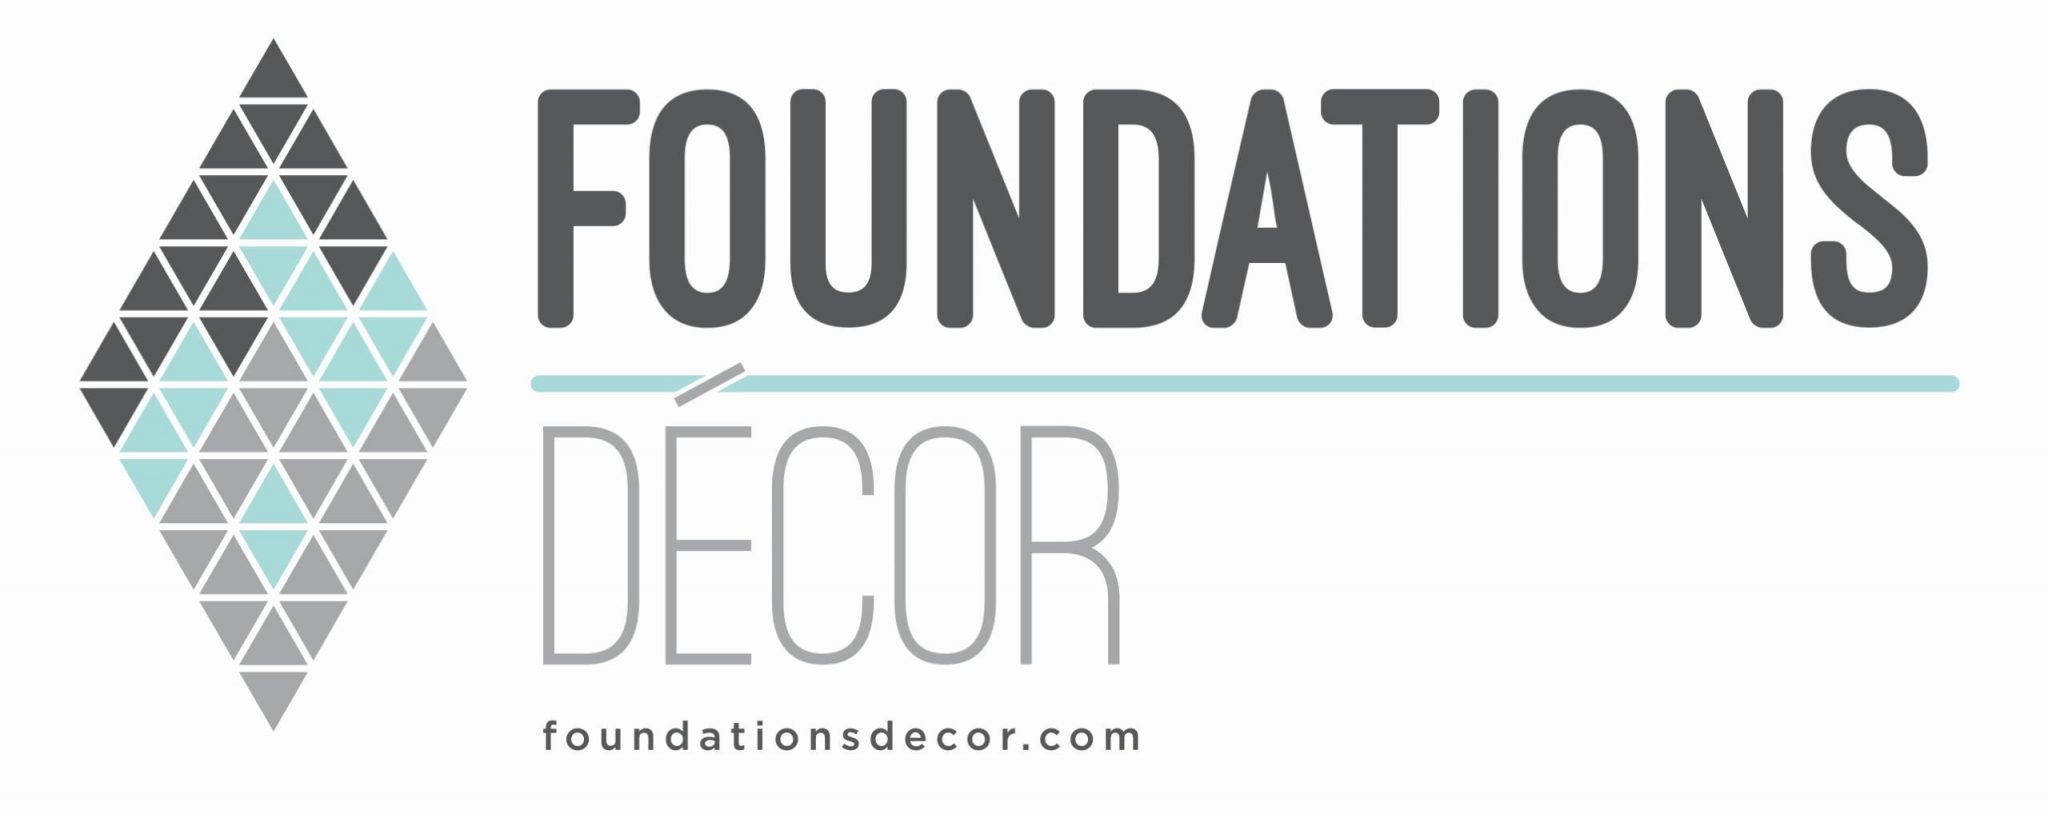 Stamp and Scrapbook Expo Foundations Decor